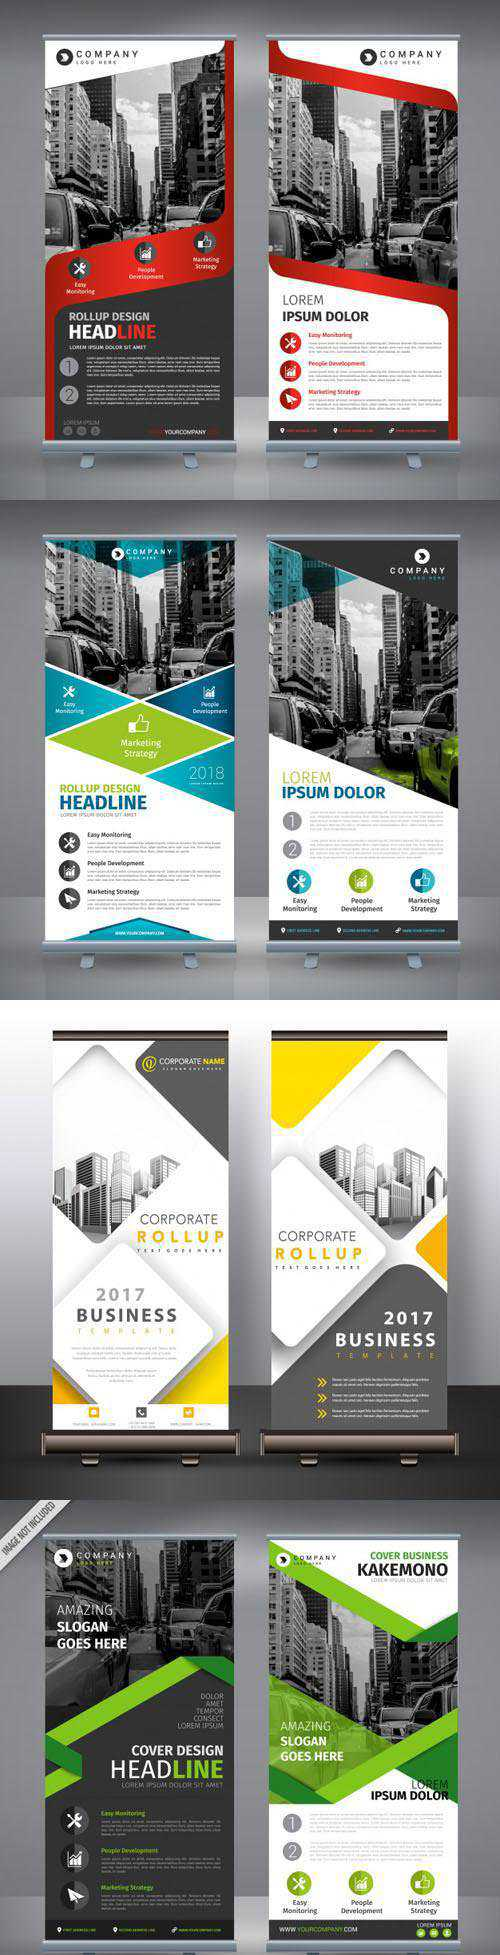 5 Double Roll-up Templates Design Vector